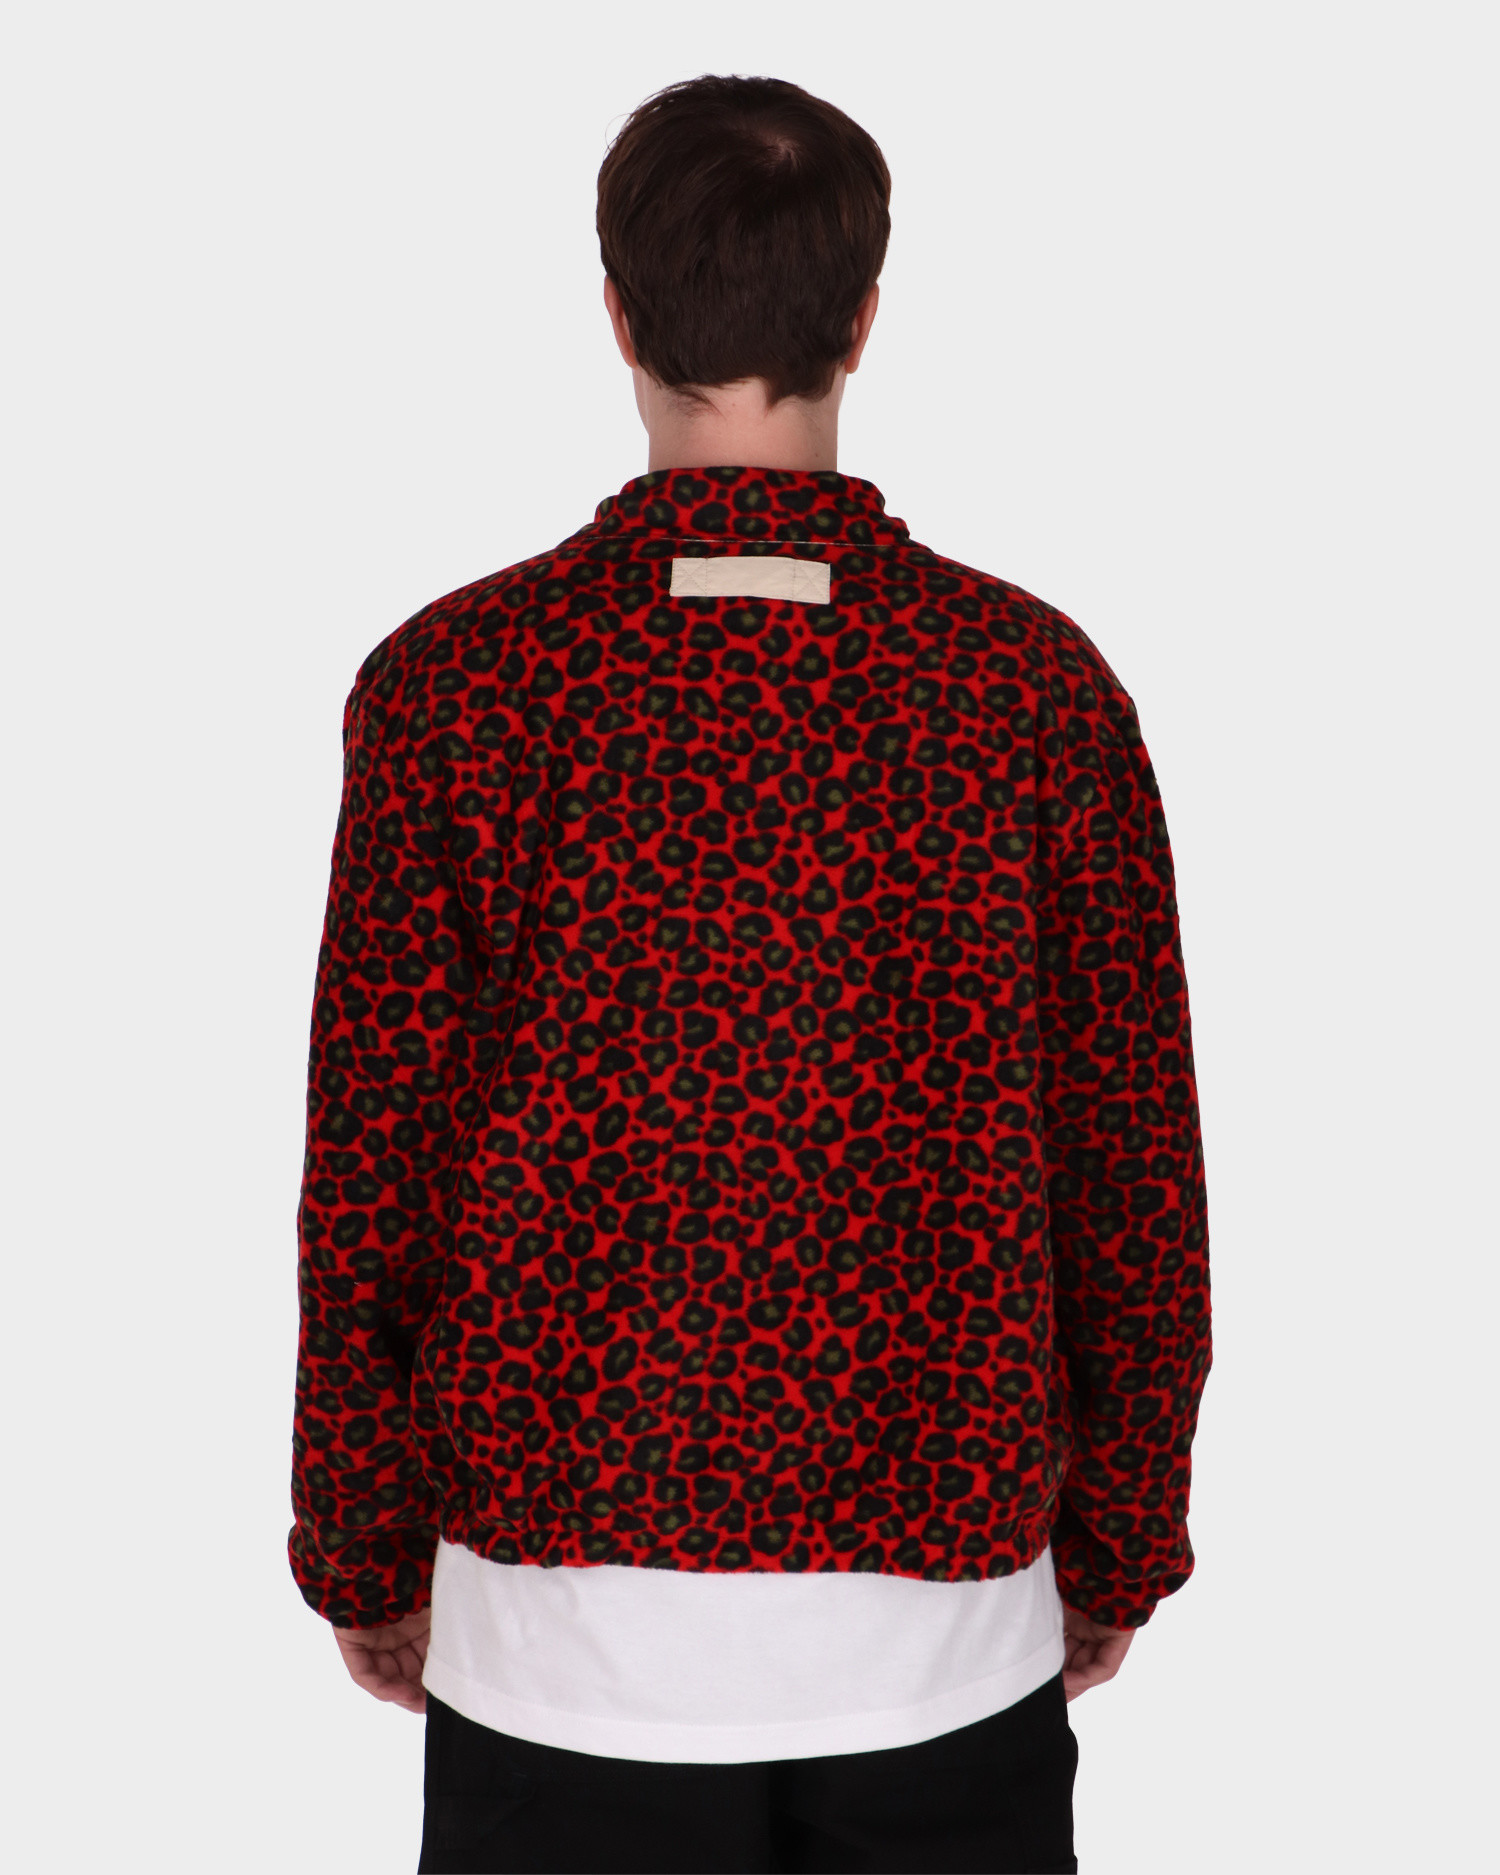 Patta Reversible Jacket Oyster Grey/Red Leopard